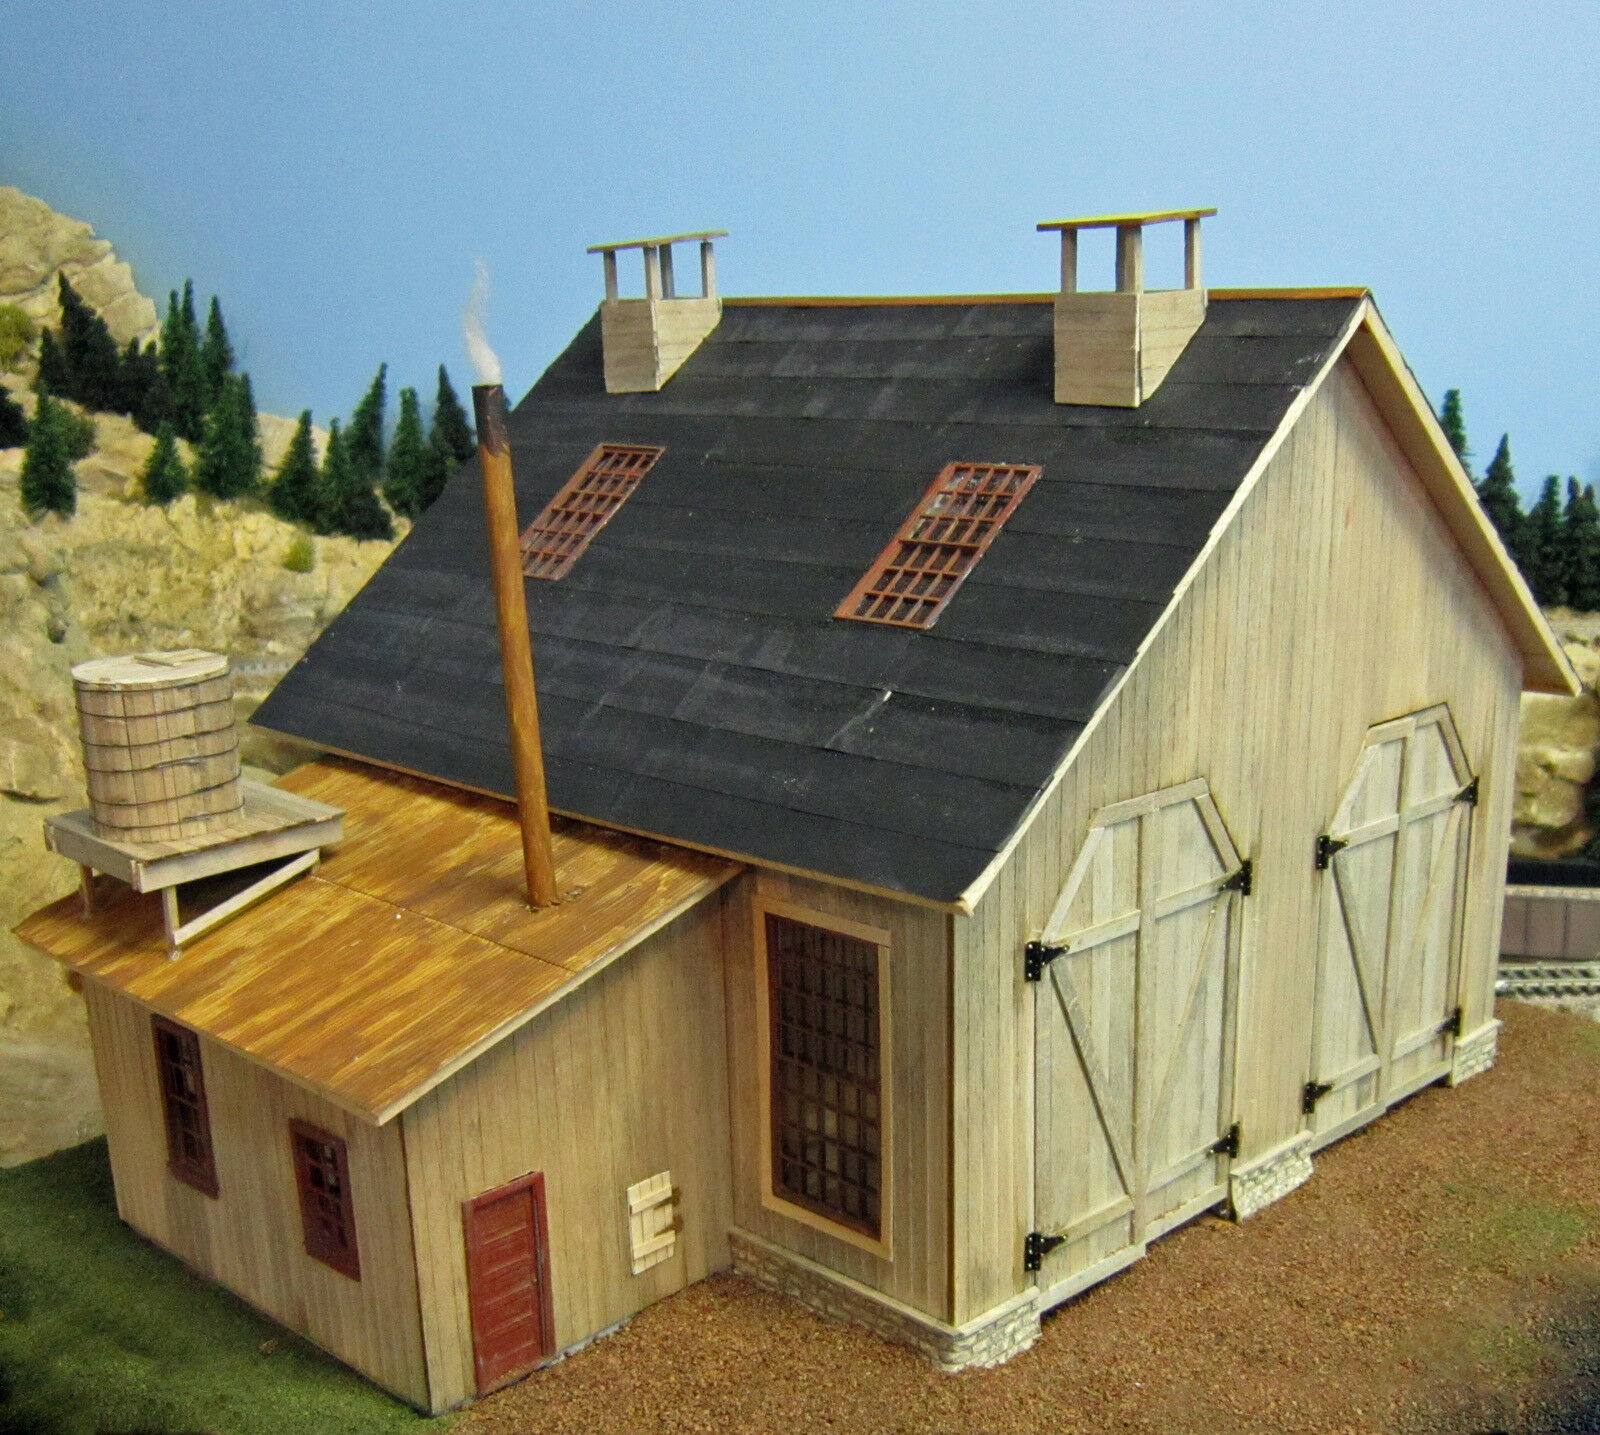 TWO STALL ENGINE HOUSE 14  DEEP O Model Railroad Structure Unptd Laser Kit BR306